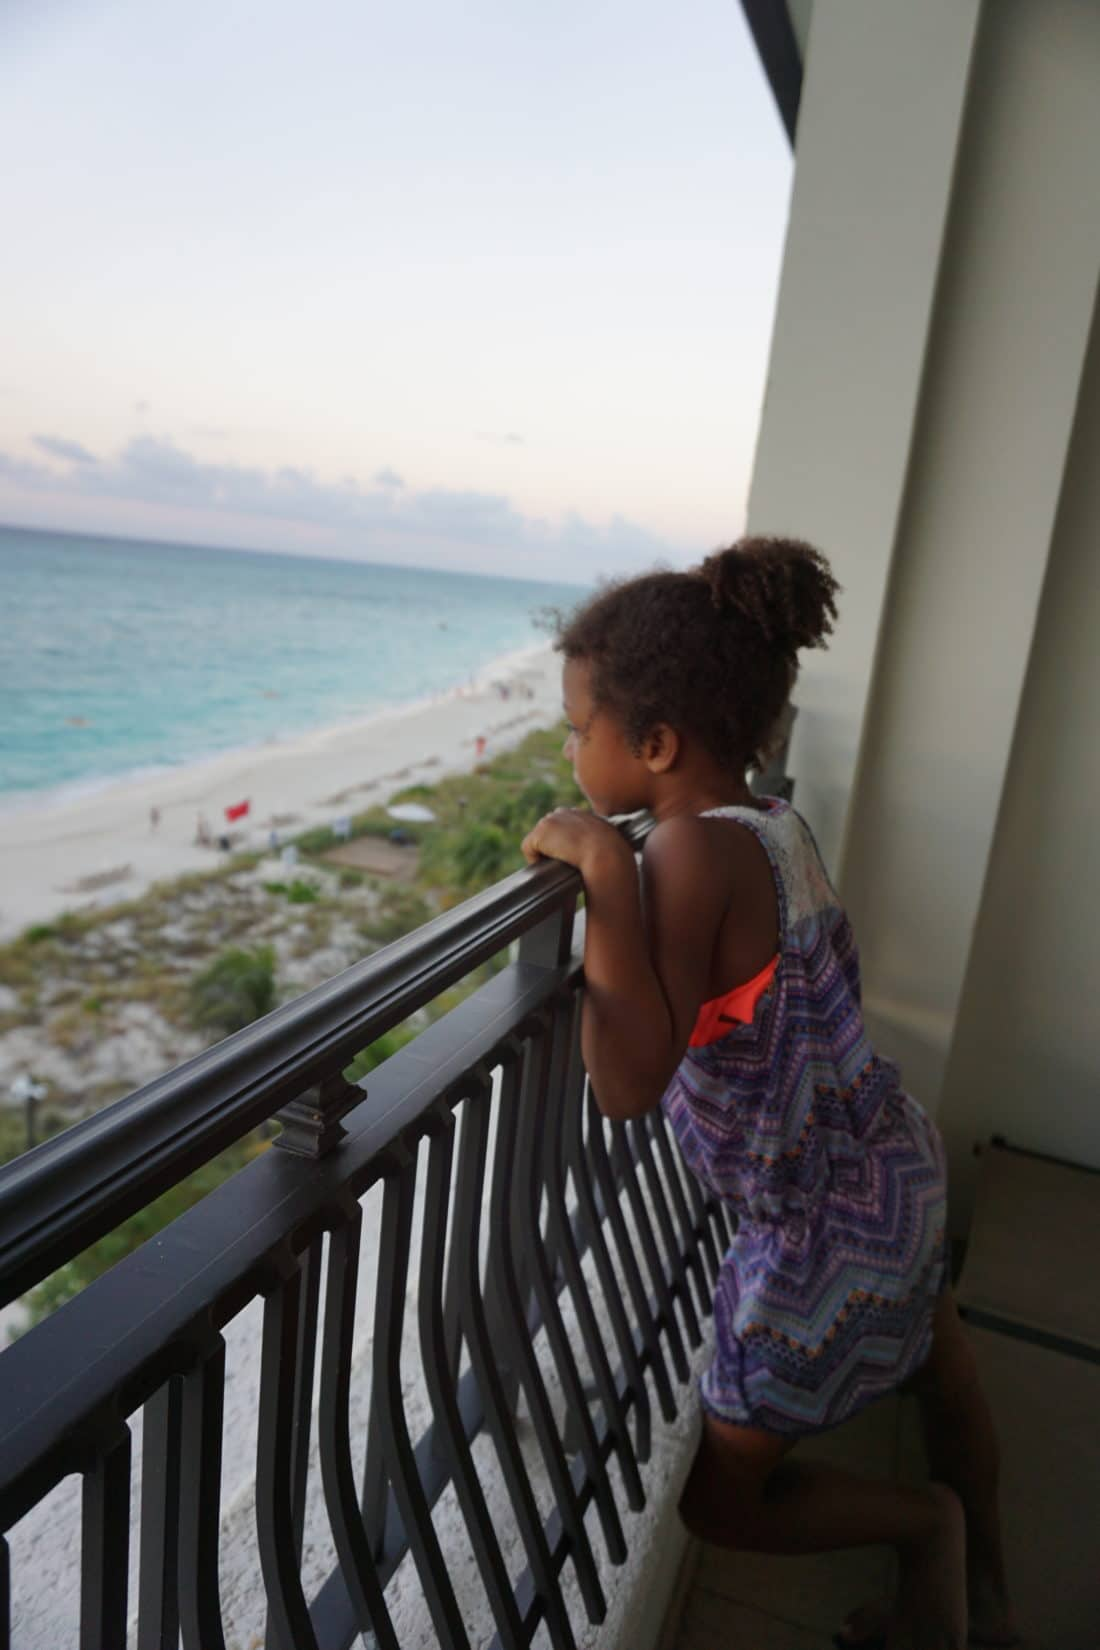 Oceanfront Family Suite Room Tour at Beaches Resorts in Turks and Caicos Girl On Balcony. Paradise does exist, and it's only a plane ride away. Take a look inside our suite in this Oceanfront Family Suite Room Tour at Beaches Resorts in Turks and Caicos.